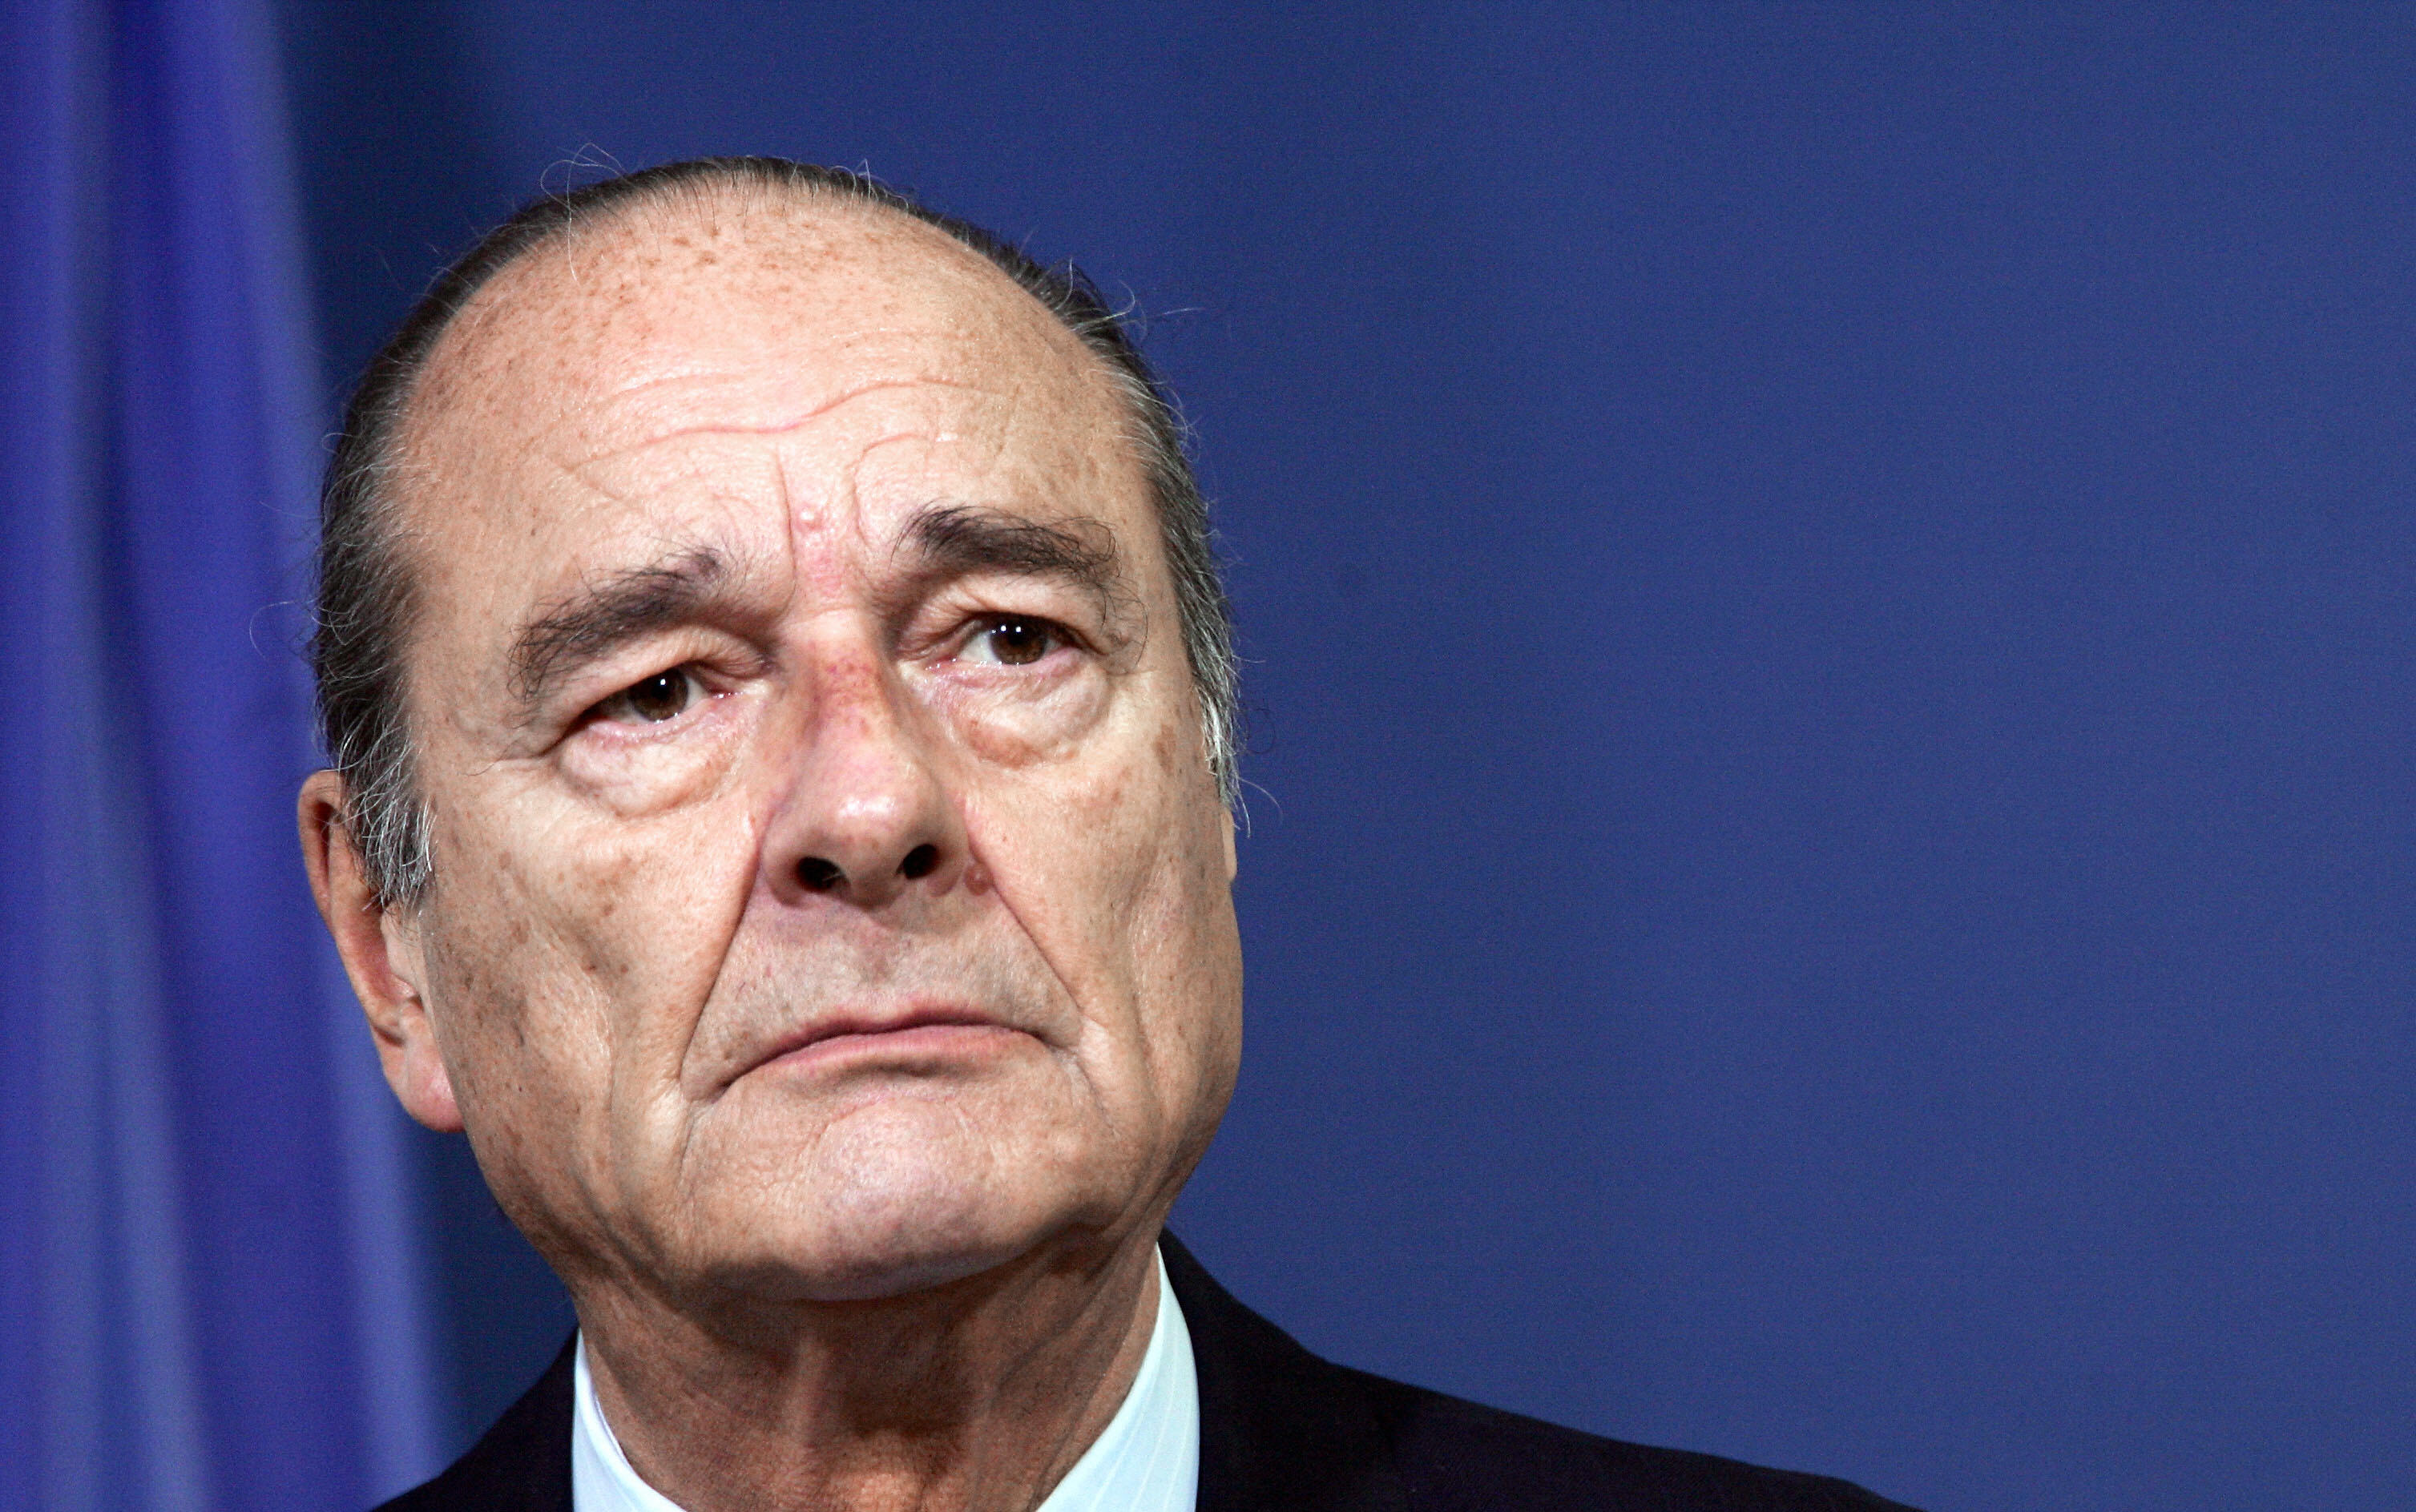 Bayonne, FRANCE: French President Jacques Chirac delivers a speech, 03 April 2007 in the southern town of Bayonne, during his last visit to French Army's Special Forces Regiment. AFP PHOTO PATRICK KOVARIK (Photo credit should read PATRICK KOVARIK/AFP/Getty Images)